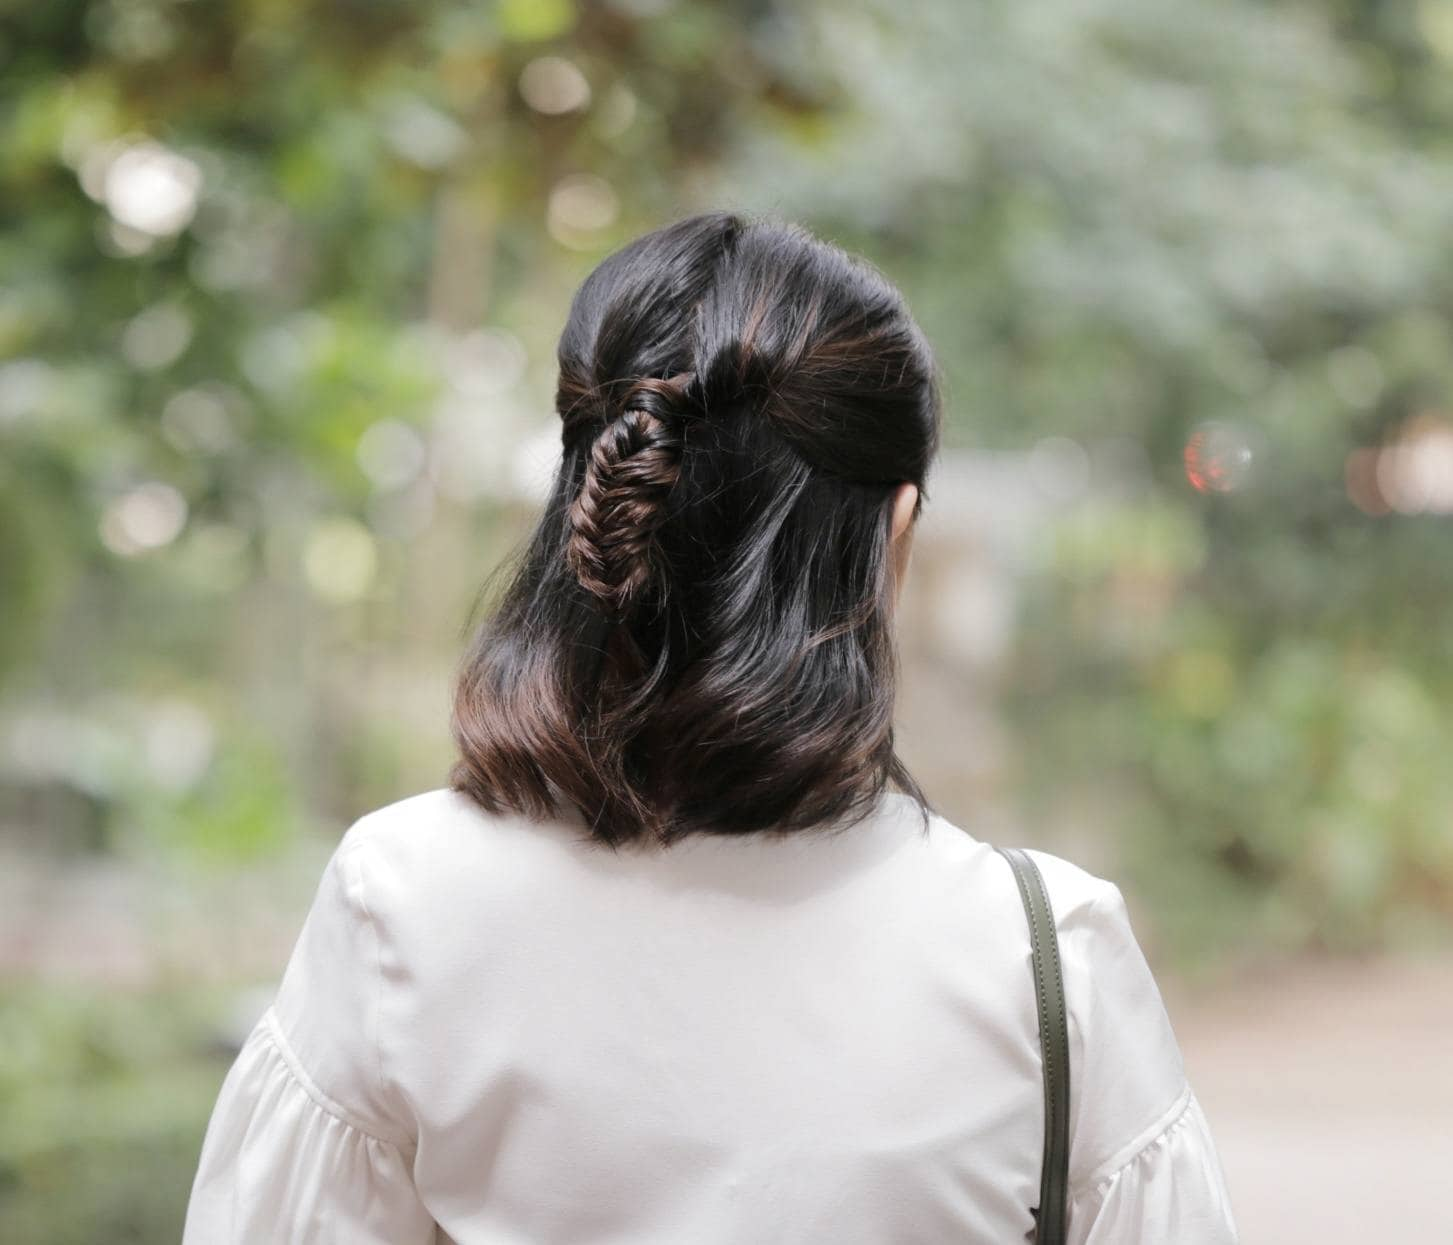 Back shot of an Asian woman with short hair in a half-up fishtail braid